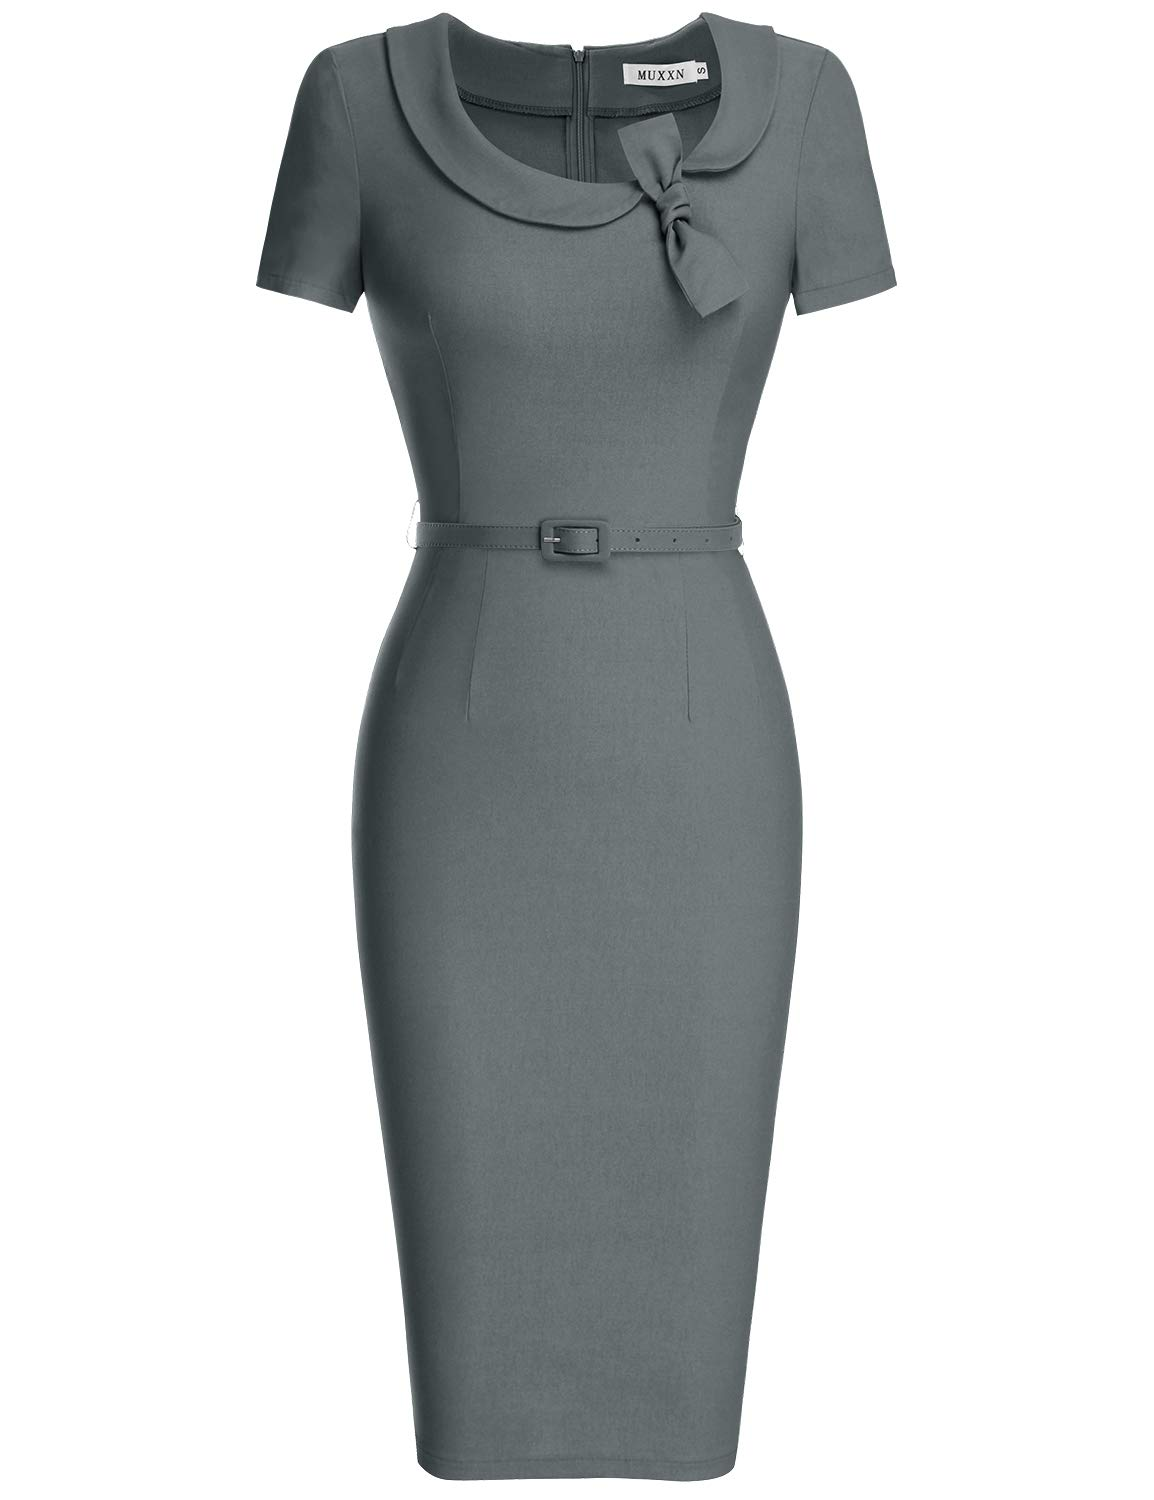 MUXXN Women's Pinup 1950s Style Cut Out Neck High Stretchy Formal Dress (3XL, Gray)